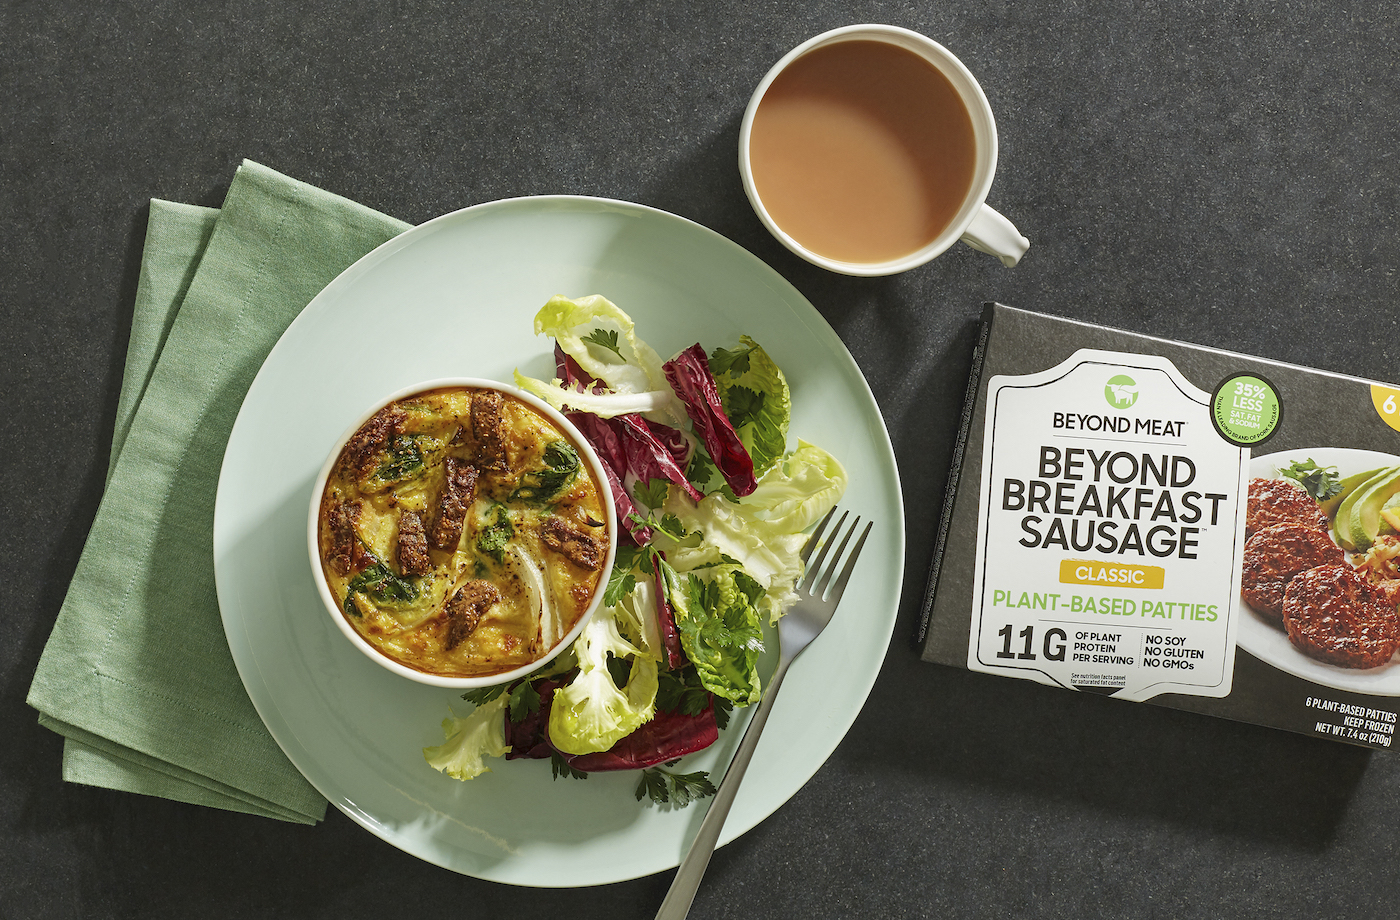 Thumbnail for Beyond Meat's New Breakfast Sausage Is Here to Take on Pork